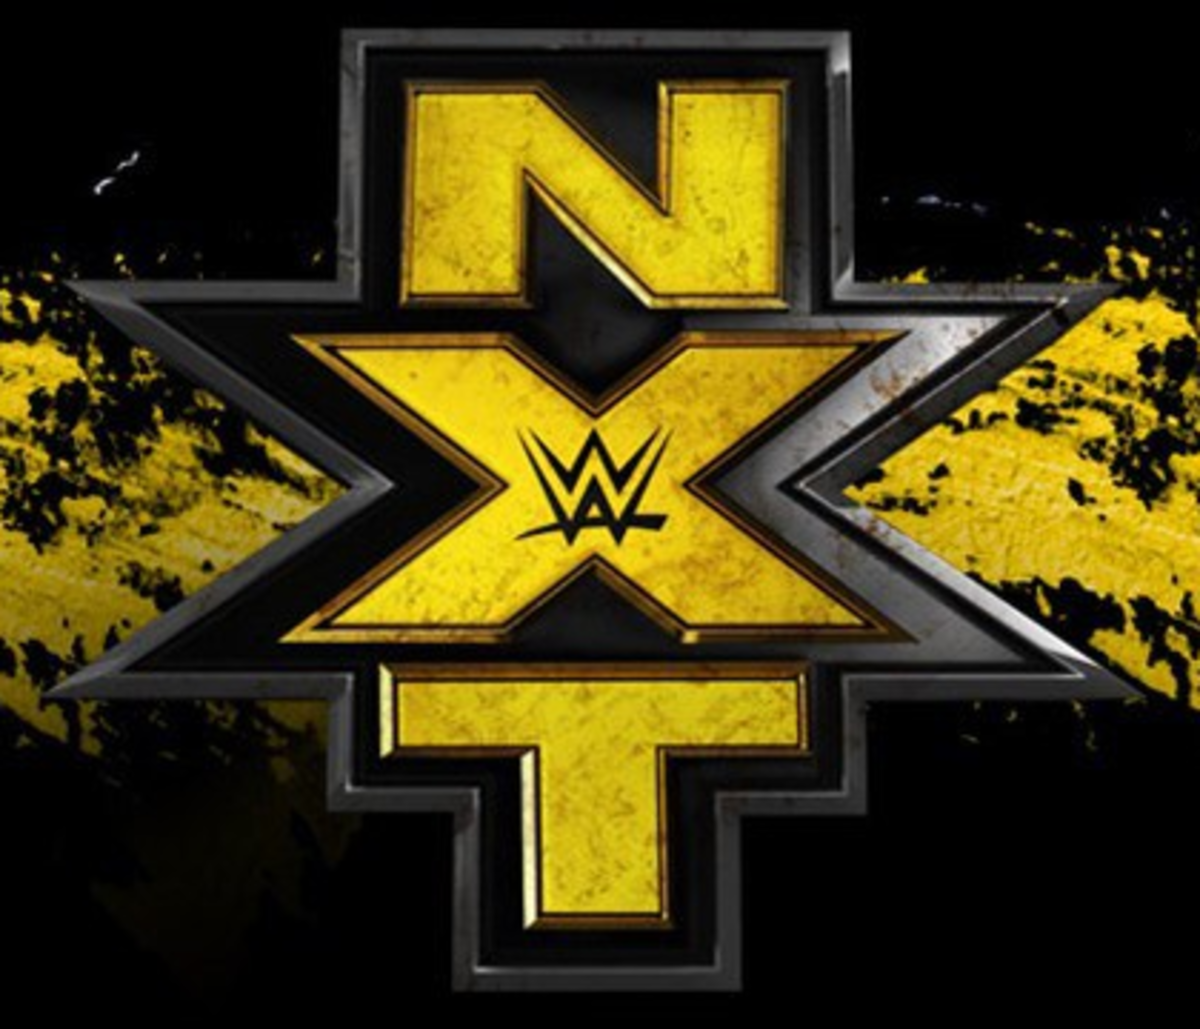 wwe nxt live 3 4 16 cleveland oh match results wwe wrestling